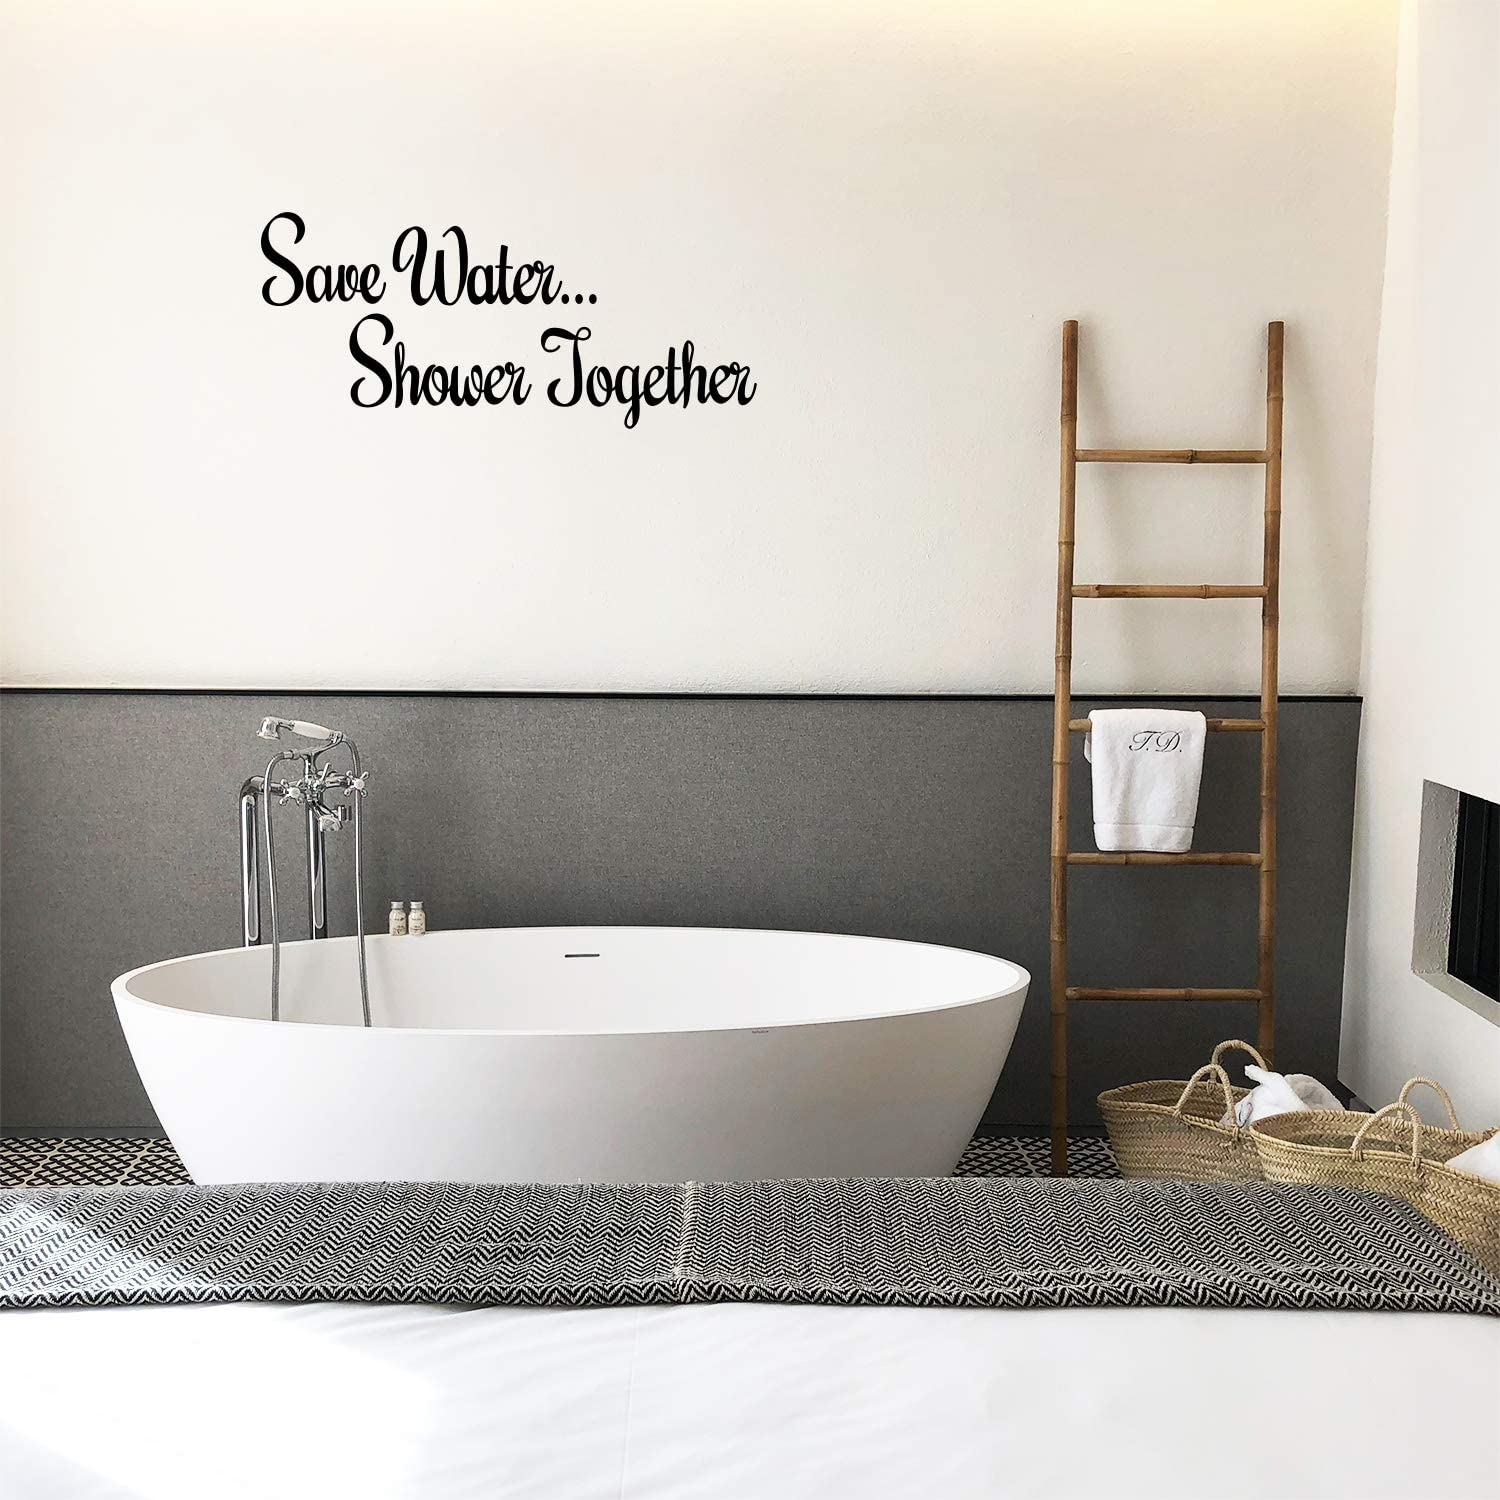 """Vinyl Wall Art Decal - Save Water Shower Together - 11"""" x 25"""" - Modern Chic Witty Adult Humor Home Living Room Bedroom Bathroom Sticker Decoration - Funny Couples Household Peel and Stick Adhesive"""